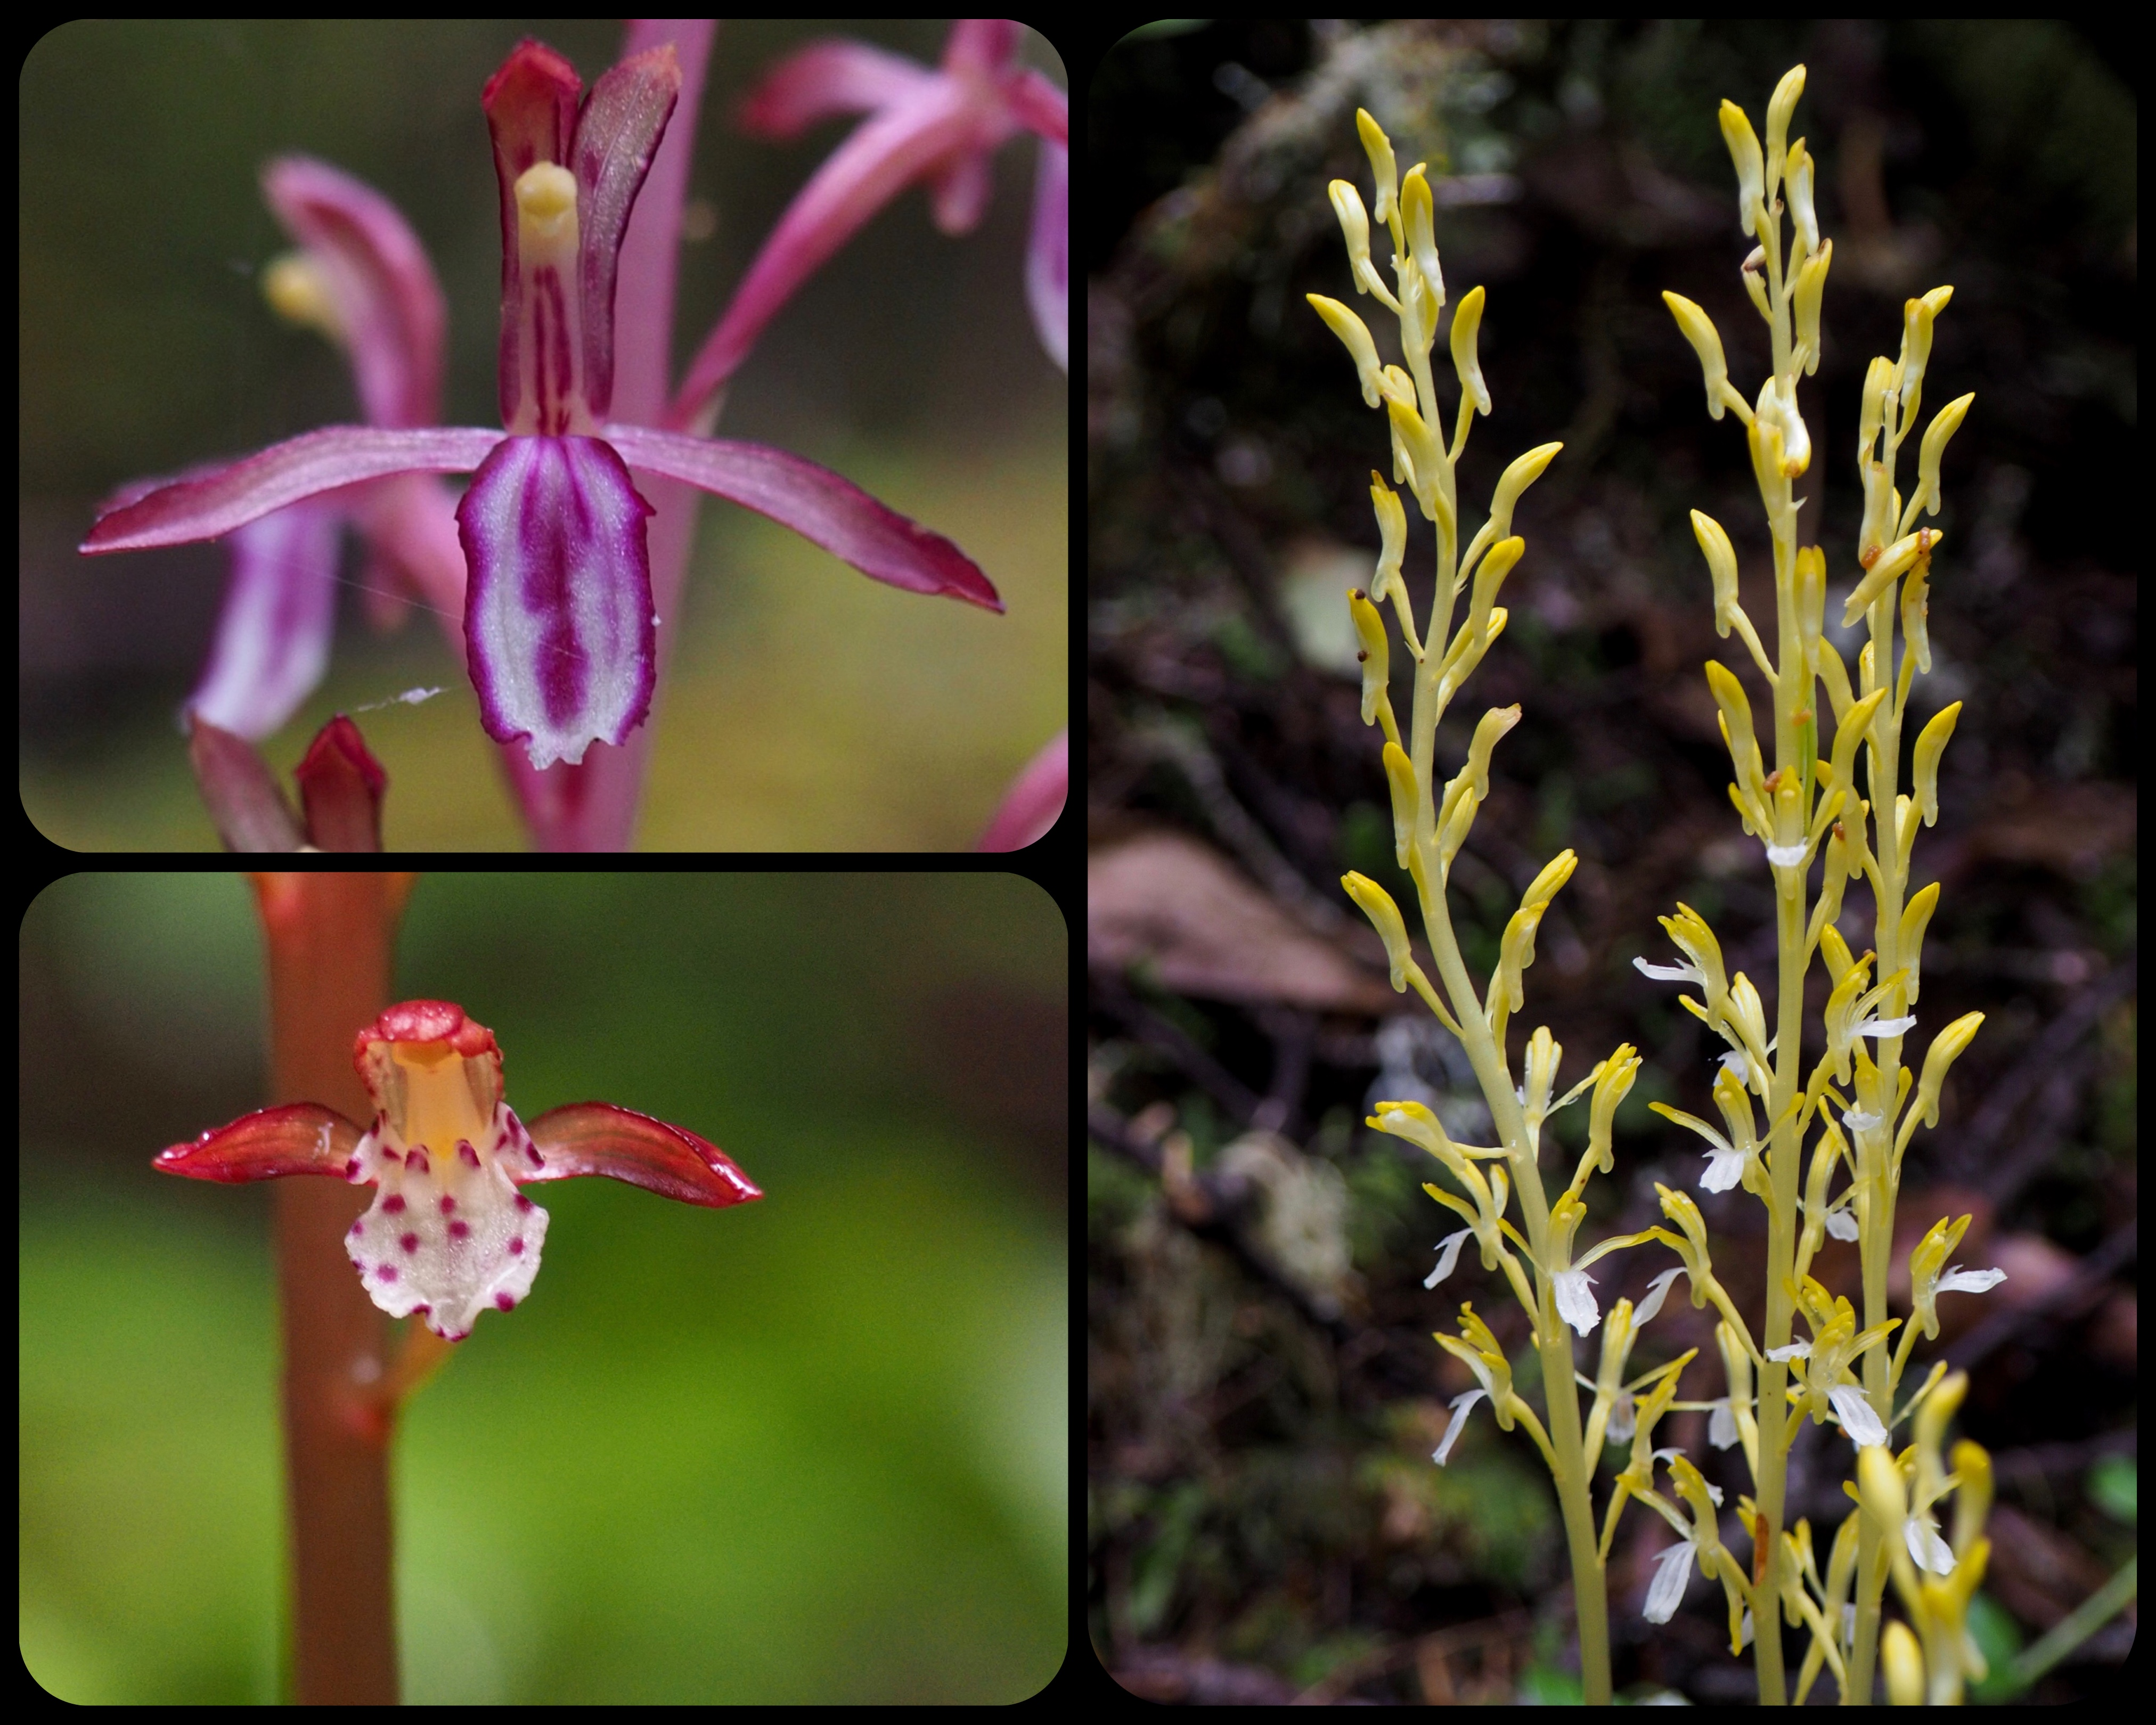 n the moist, riverside woodland, coralroot orchids flourish. In the upper left photo, a western coralroot (Corallorhiza mertensiana) displays its standard, magenta-streaked form, although significant color variation exists in this form and location. The uncommon clear yellow and white form of the western coralroot (C. mertensiana f. albolabia), shown in the right photo, also brightens the trailside. The spotted coralroot (C. maculata), shown in the lower left photo, is abundant as the trail climbs higher along the river. Upper Big Quilcene Trail, June 16, 2016.